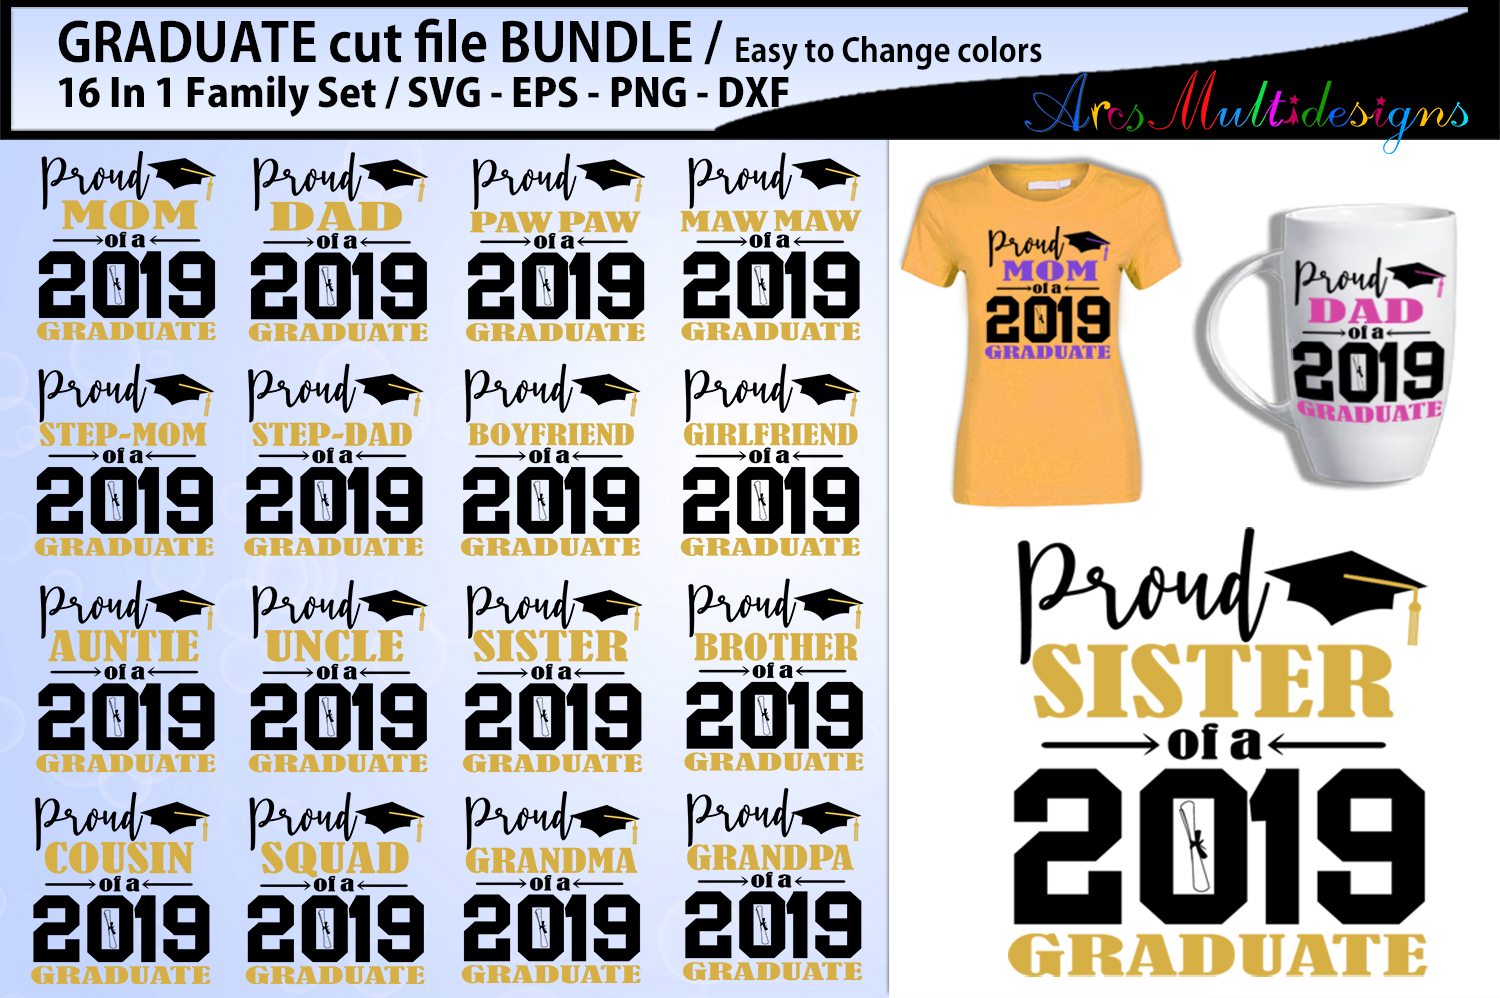 Download Free Proud Graduate Svg Cut File Bundle Graphic By Arcs Multidesigns for Cricut Explore, Silhouette and other cutting machines.